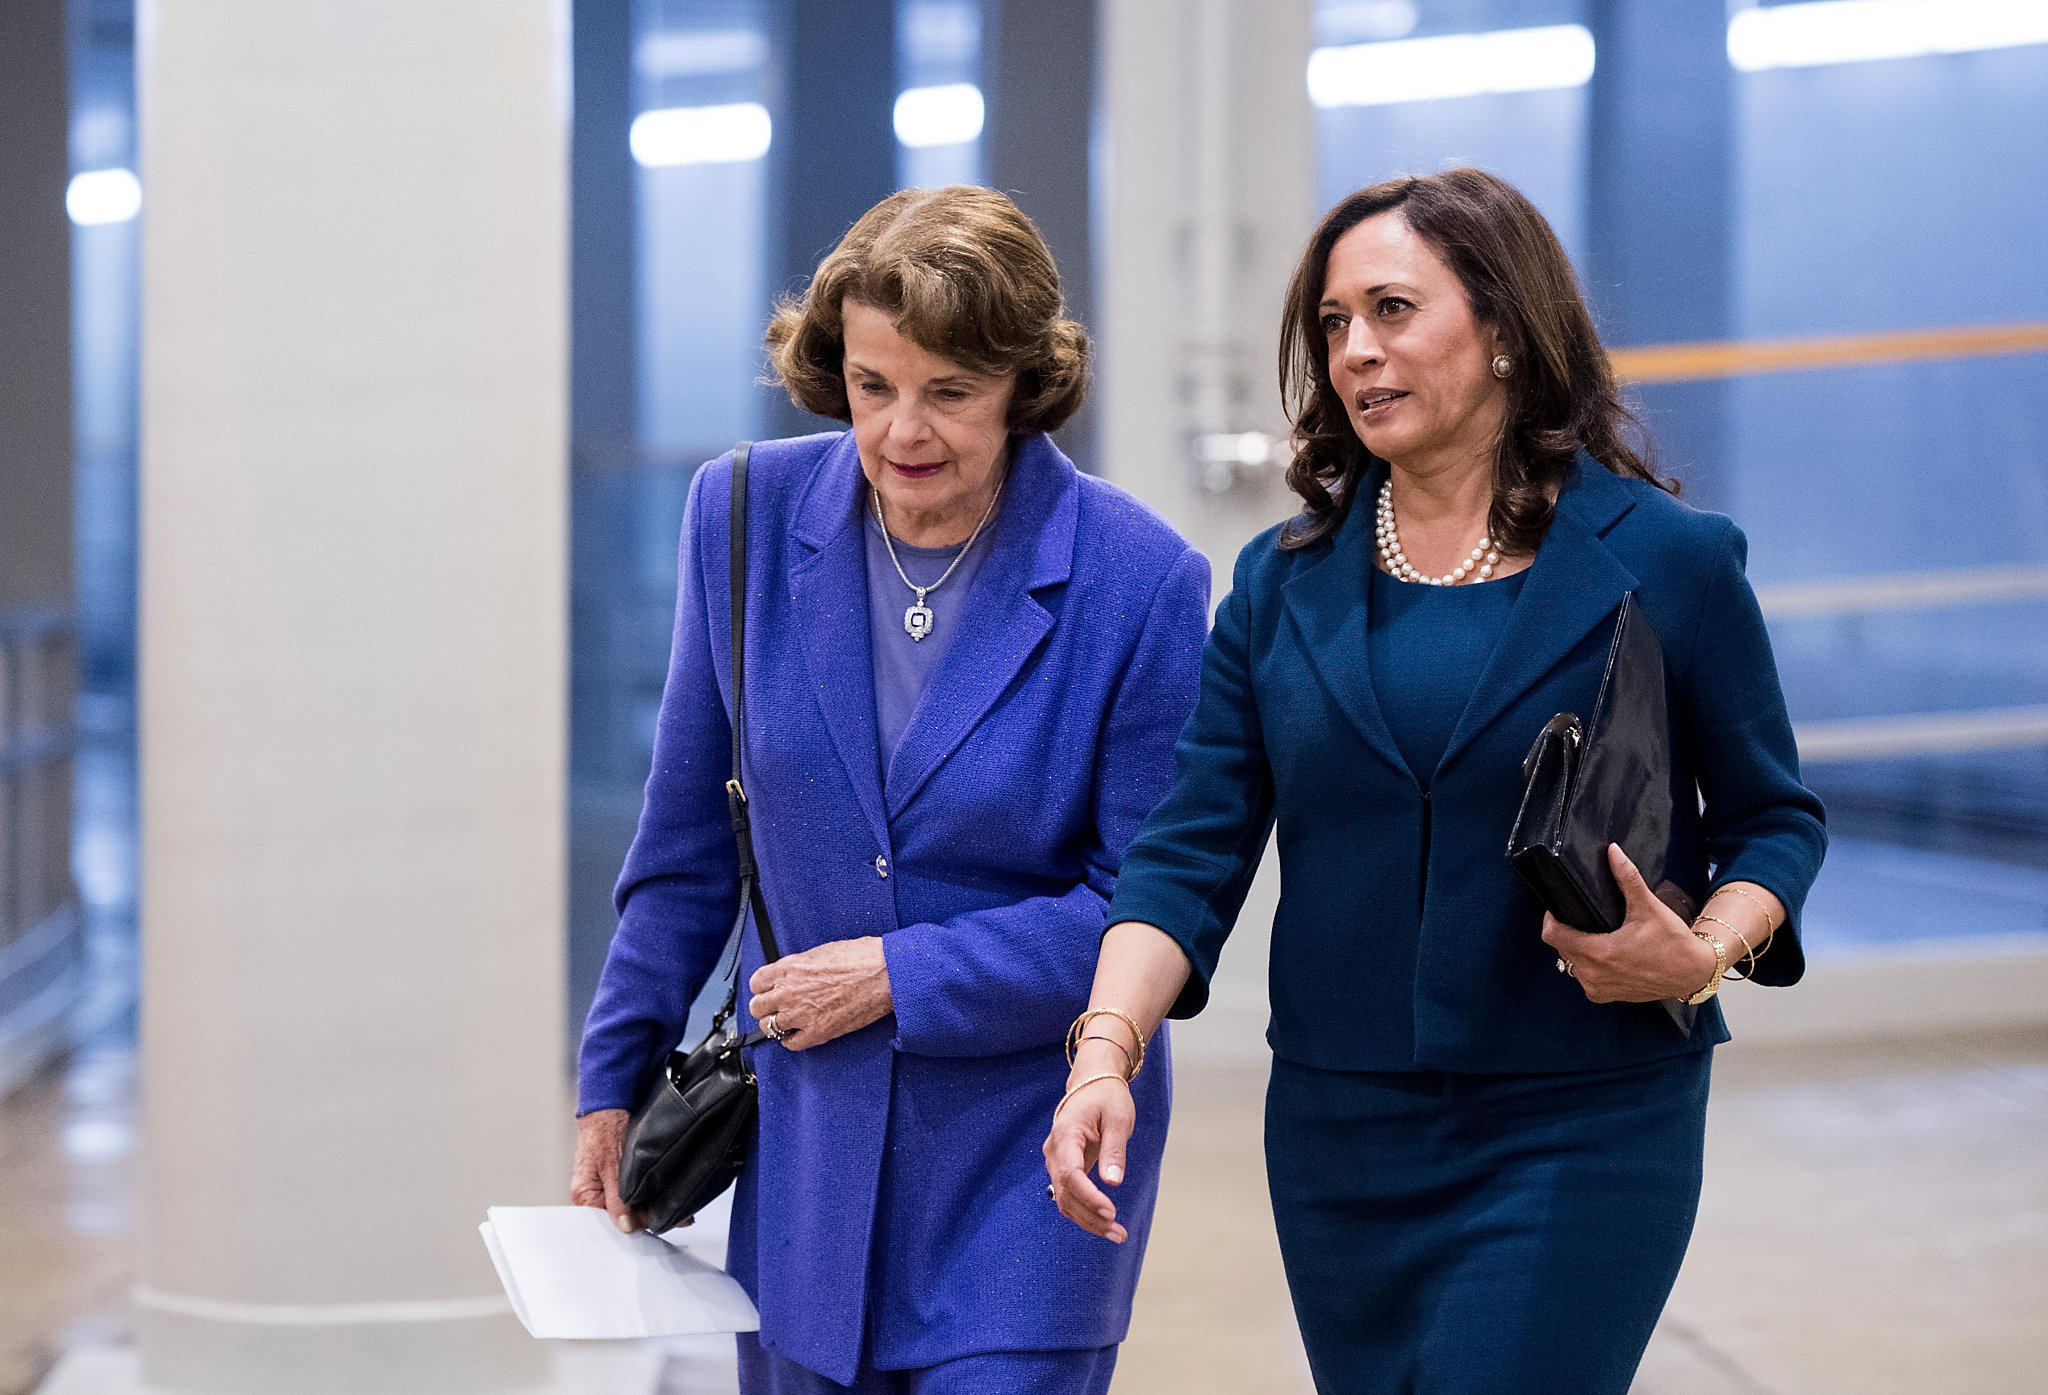 Trump S Trial Kamala Harris Goes On Attack Feinstein Stresses Impartiality Sfchronicle Com